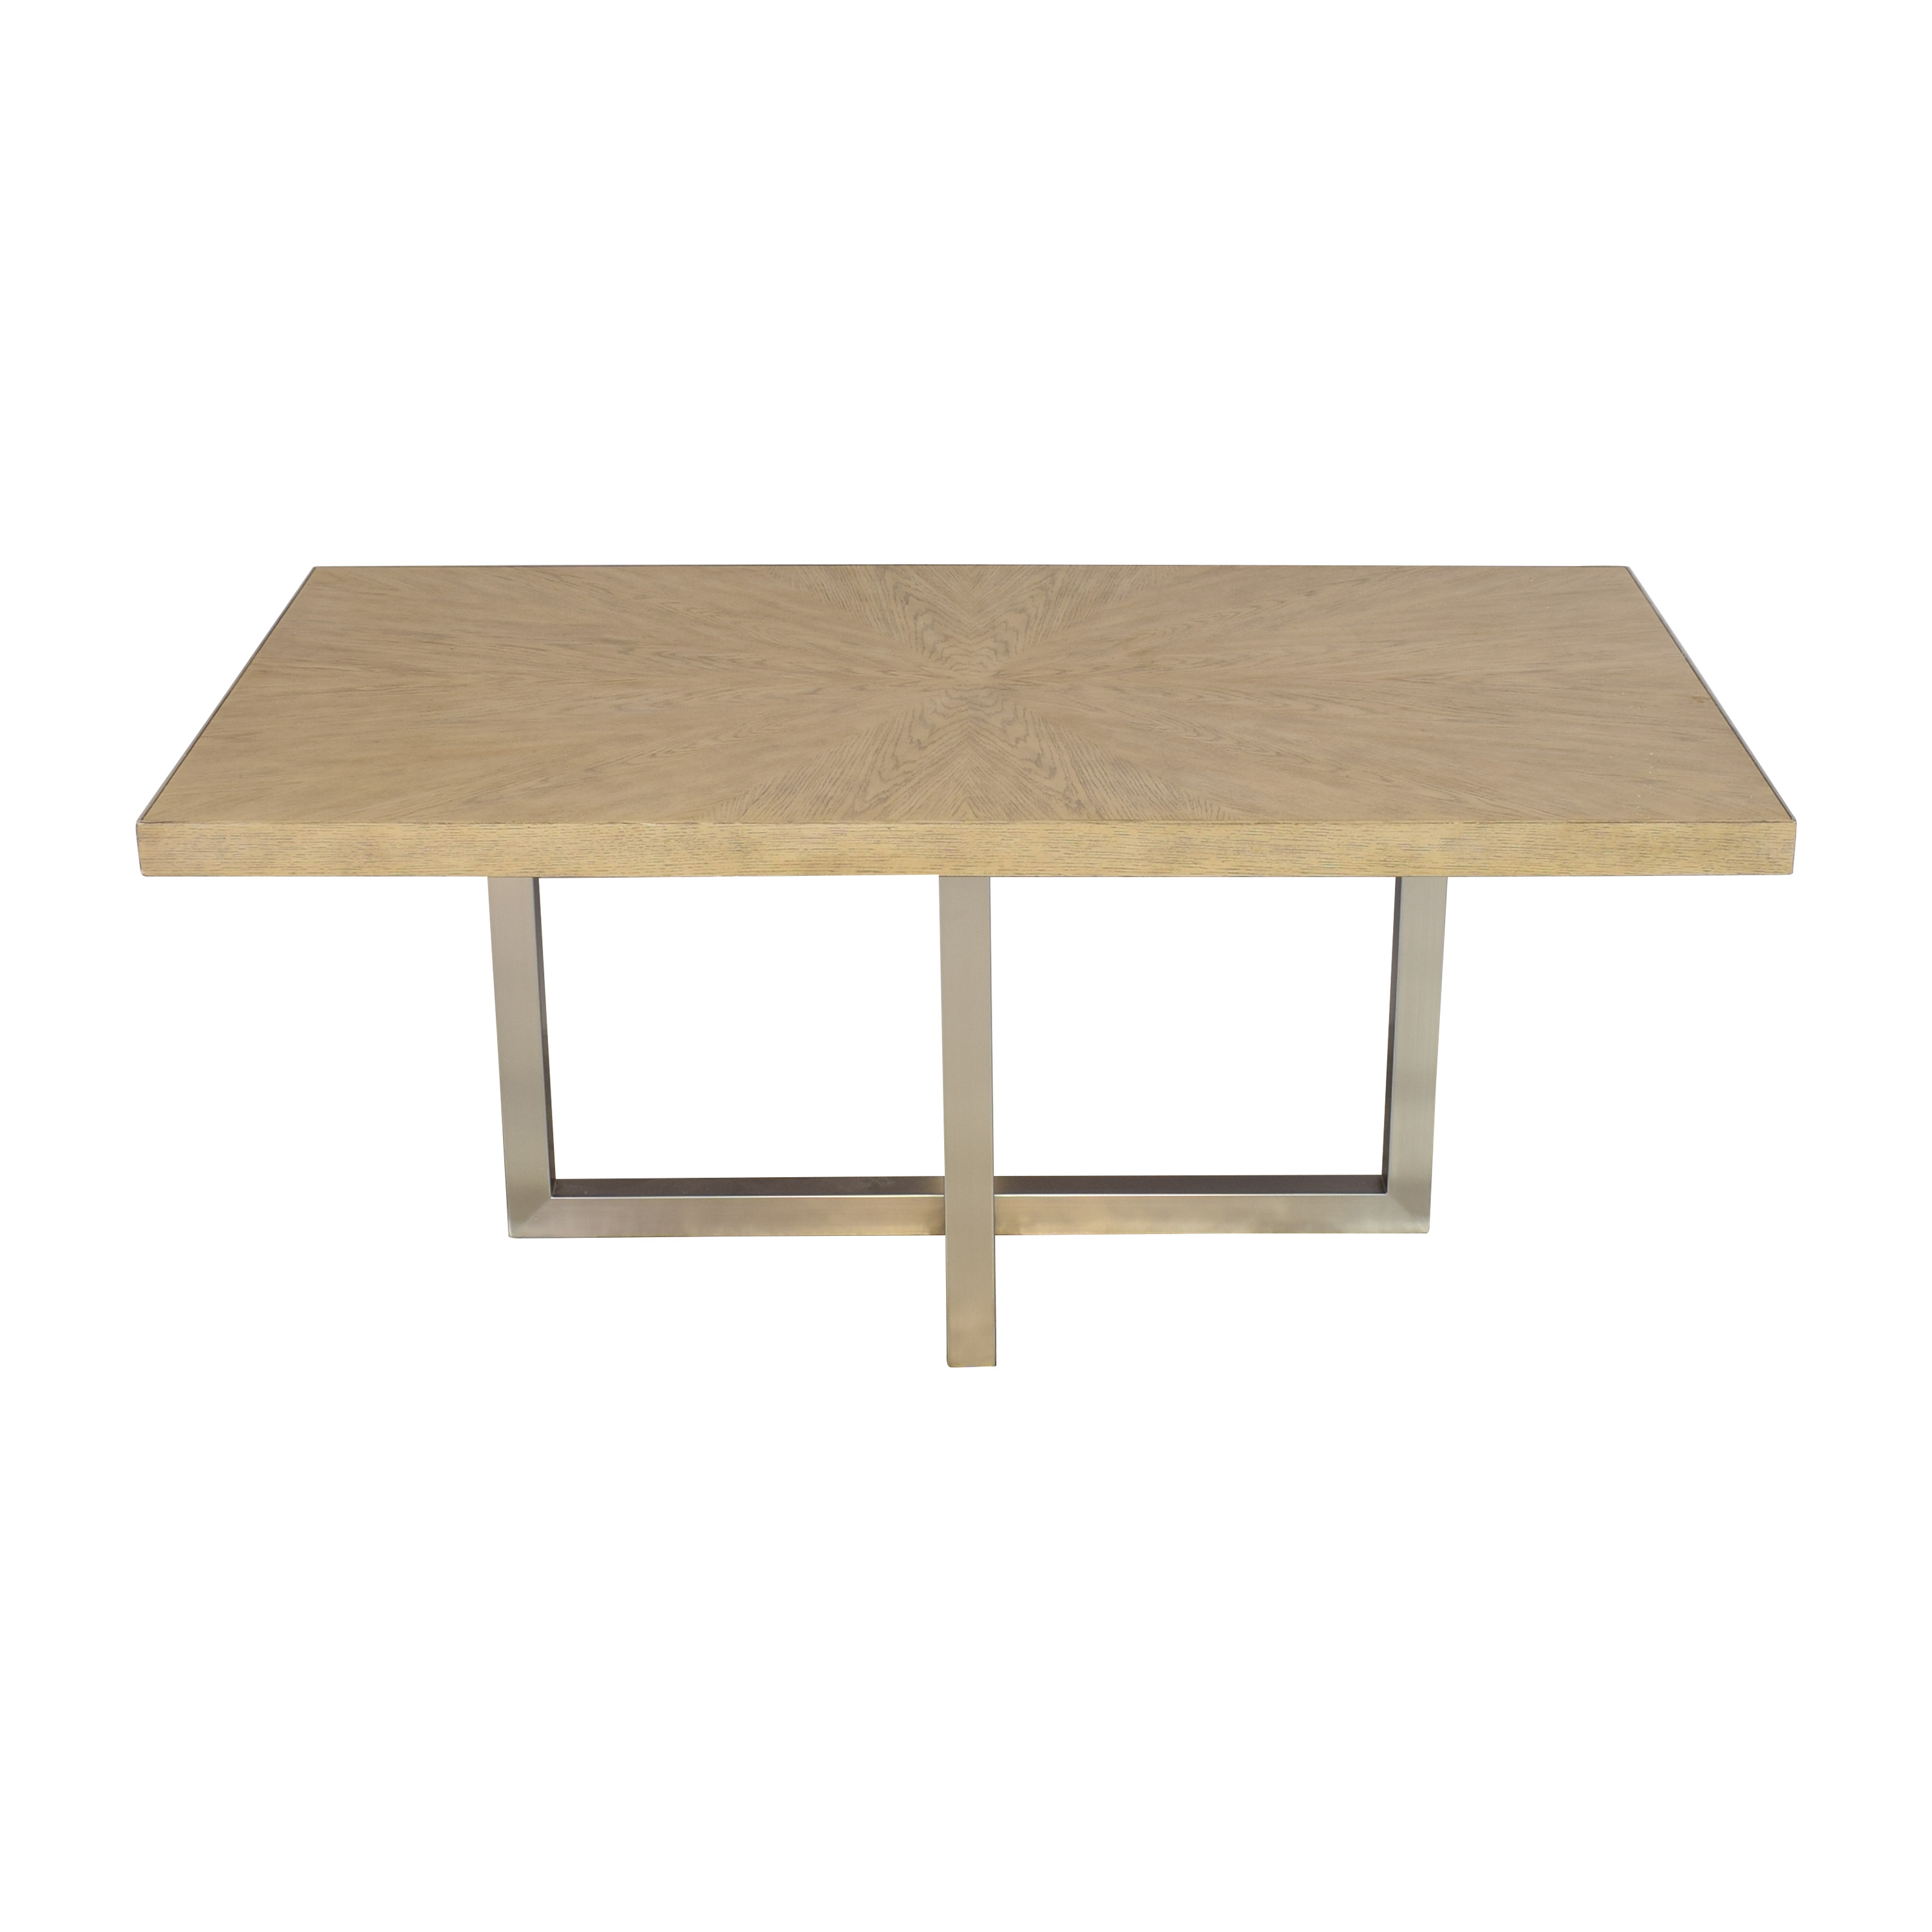 Macy's Macy's Altair Contemporary Dining Table for sale